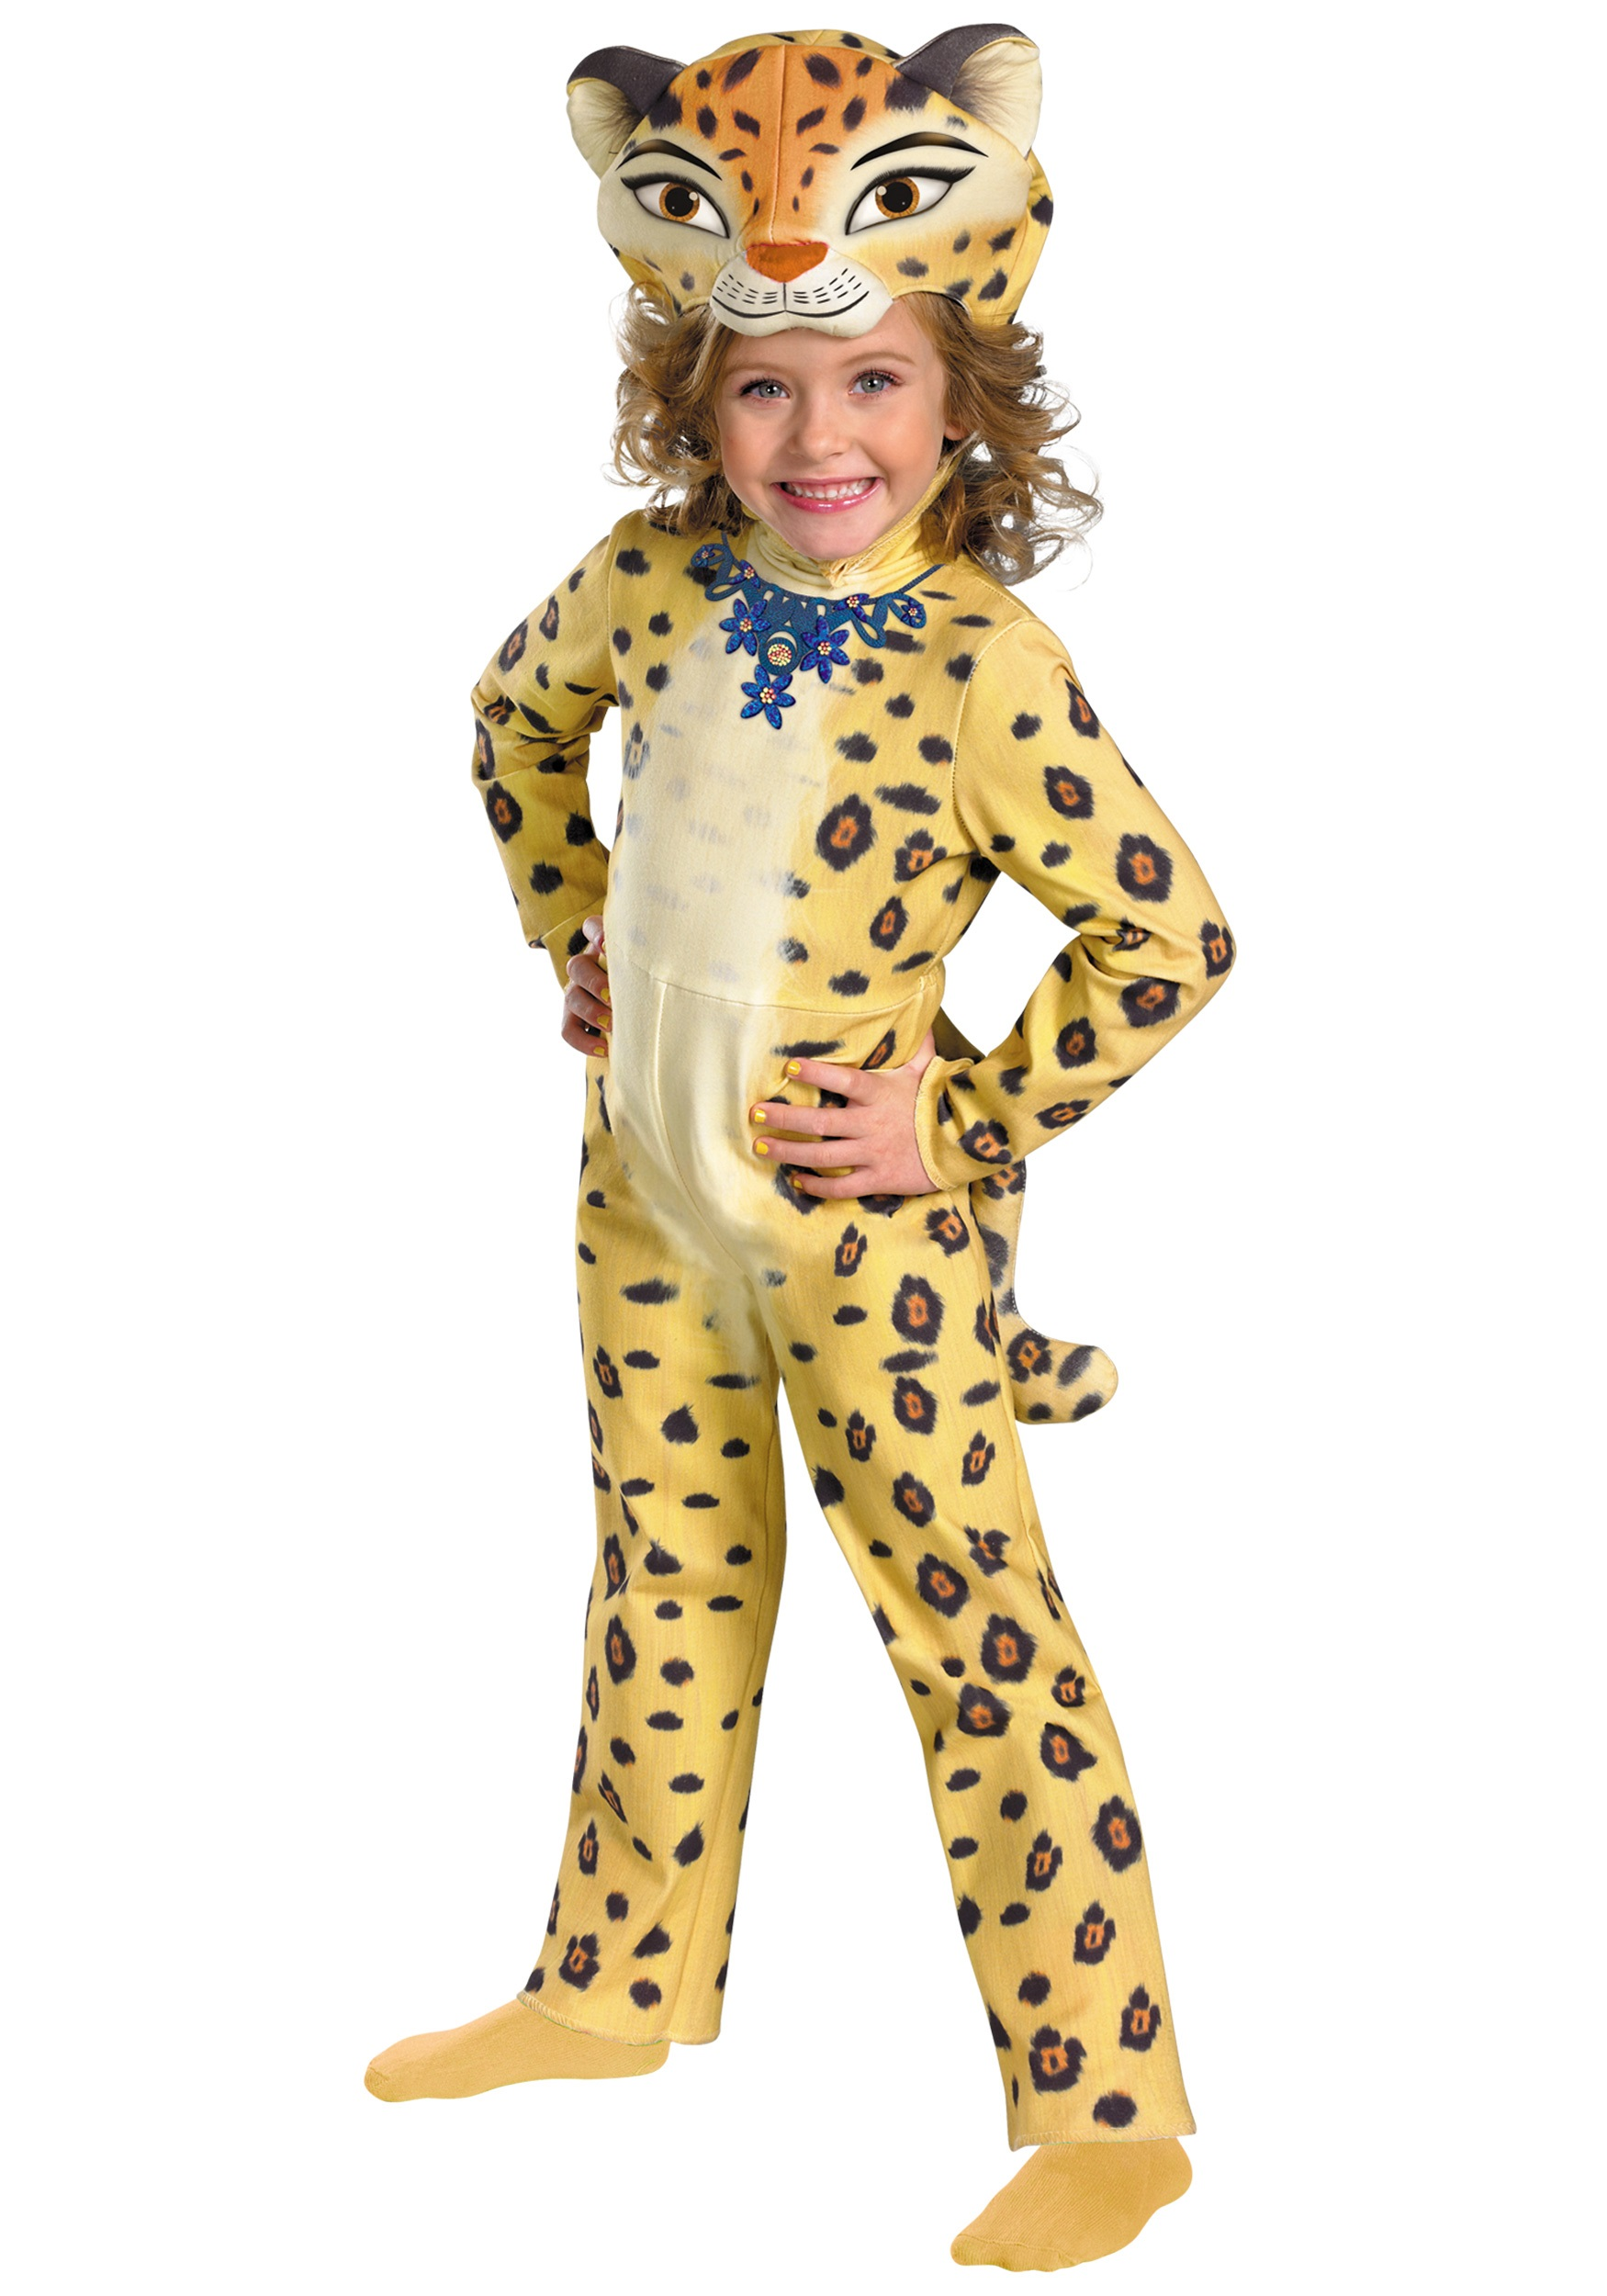 Deluxe Gia the Leopard Costume